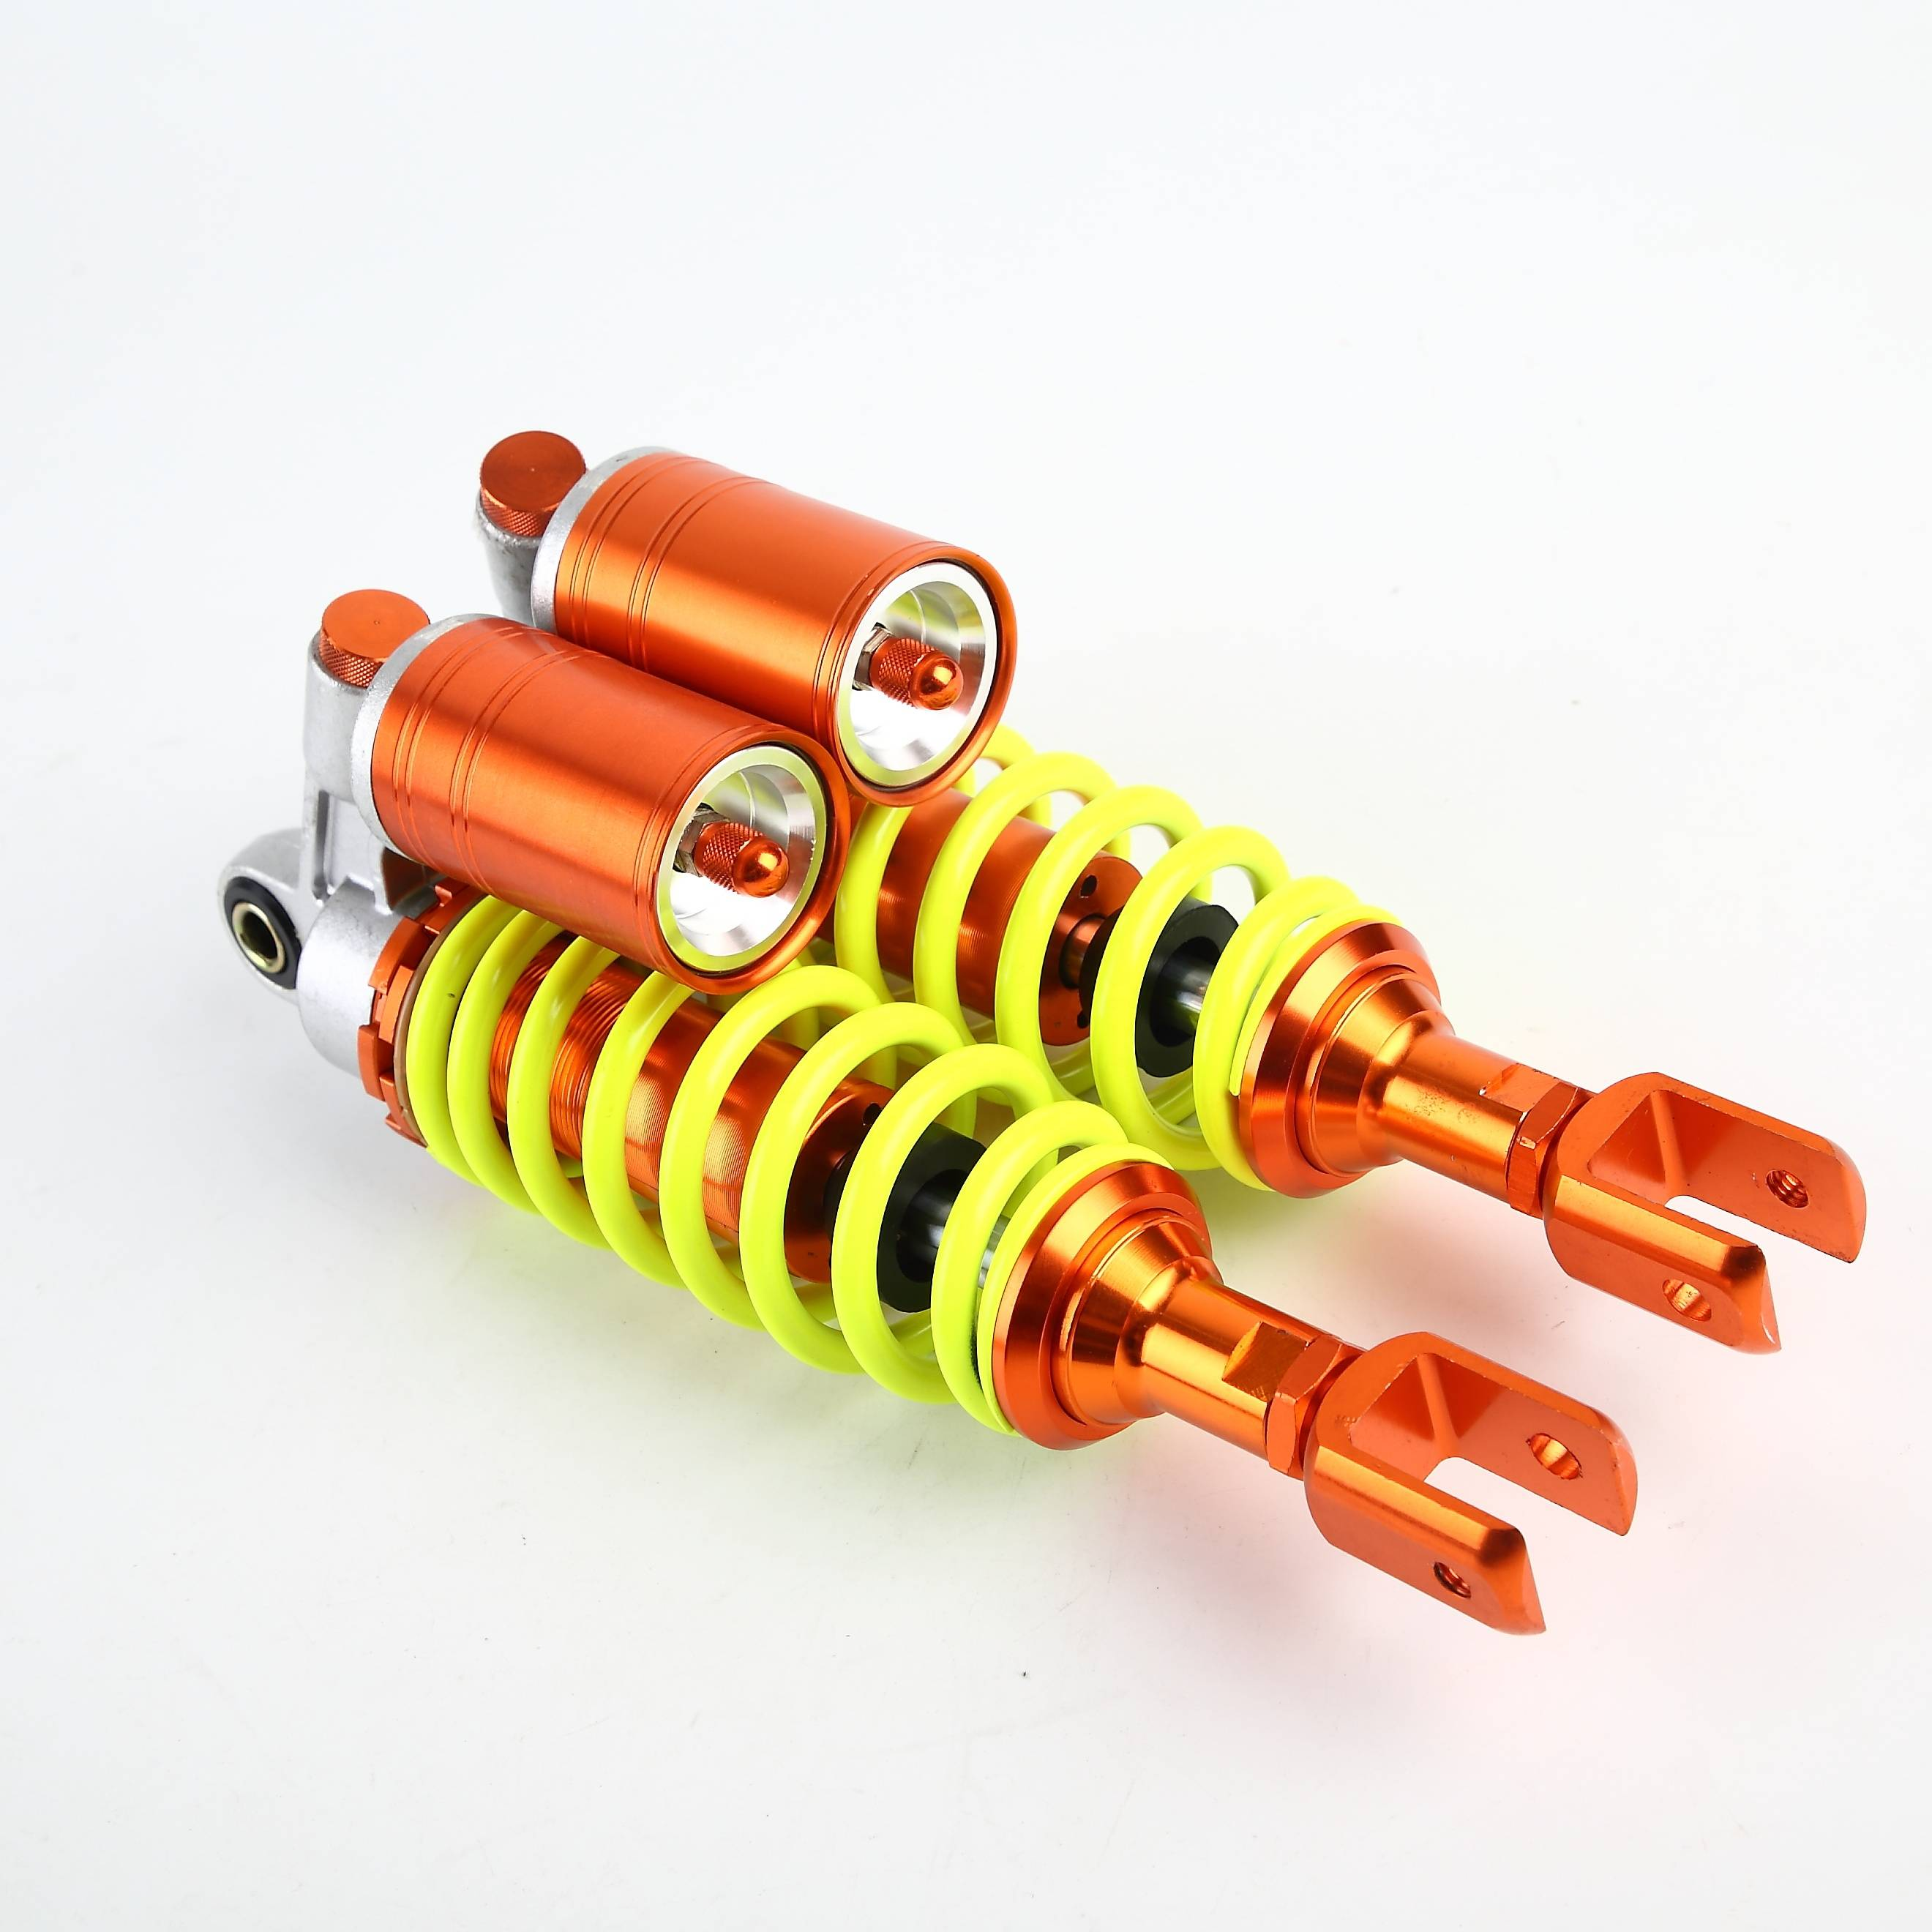 290 mm motorcycle air bag rear shock absorber hot sale